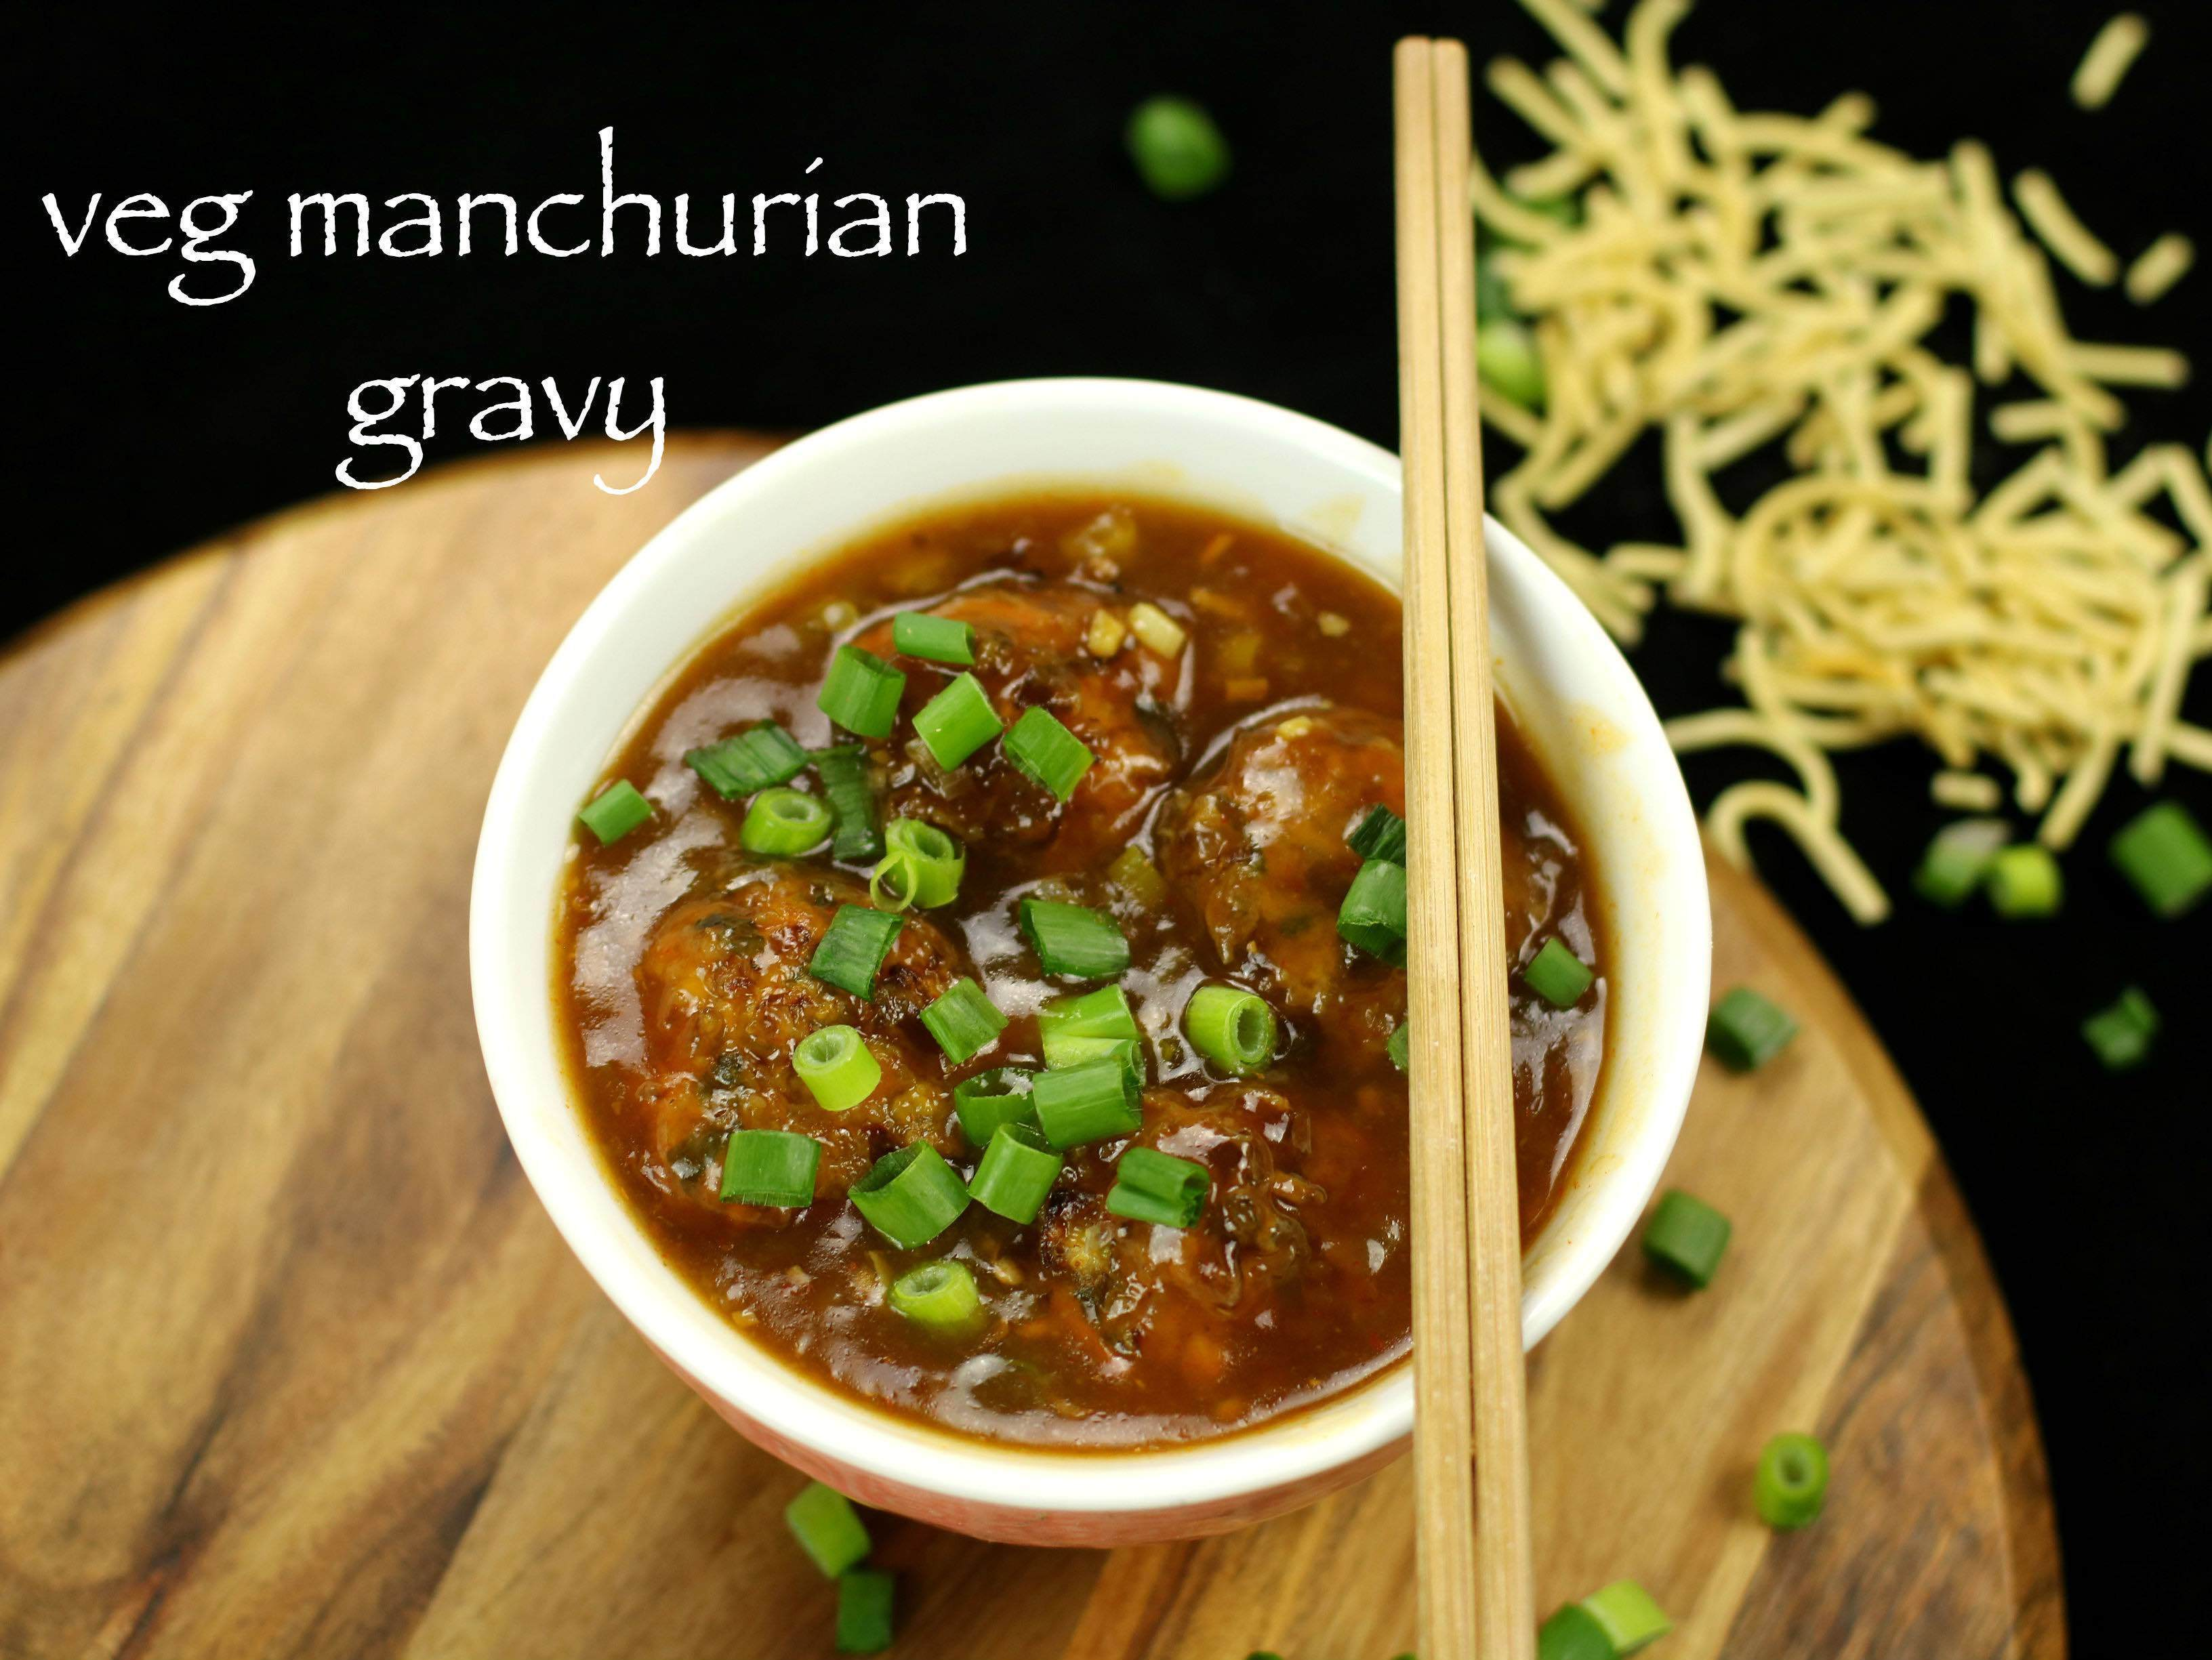 veg manchurian gravy recipe | vegetable manchurian gravy recipe